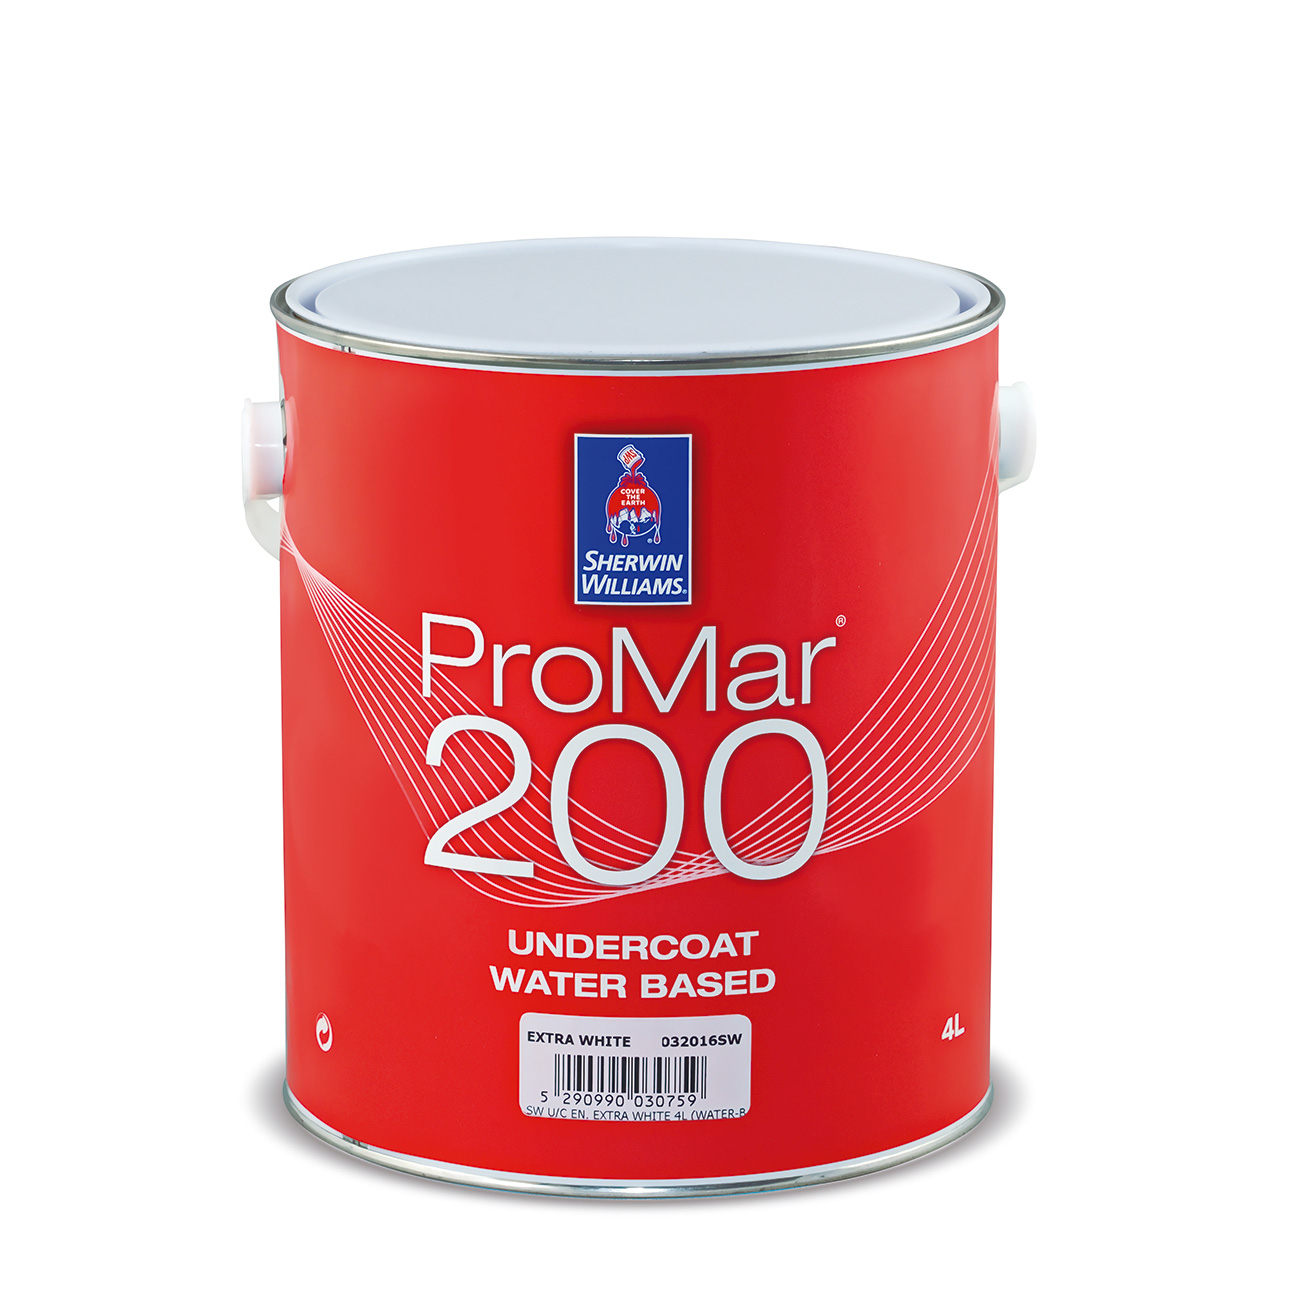 SHERWIN-WILLIAMS® PROMAR® 200 UNDERCOAT WATER BASED EXTRA WHITE 1L